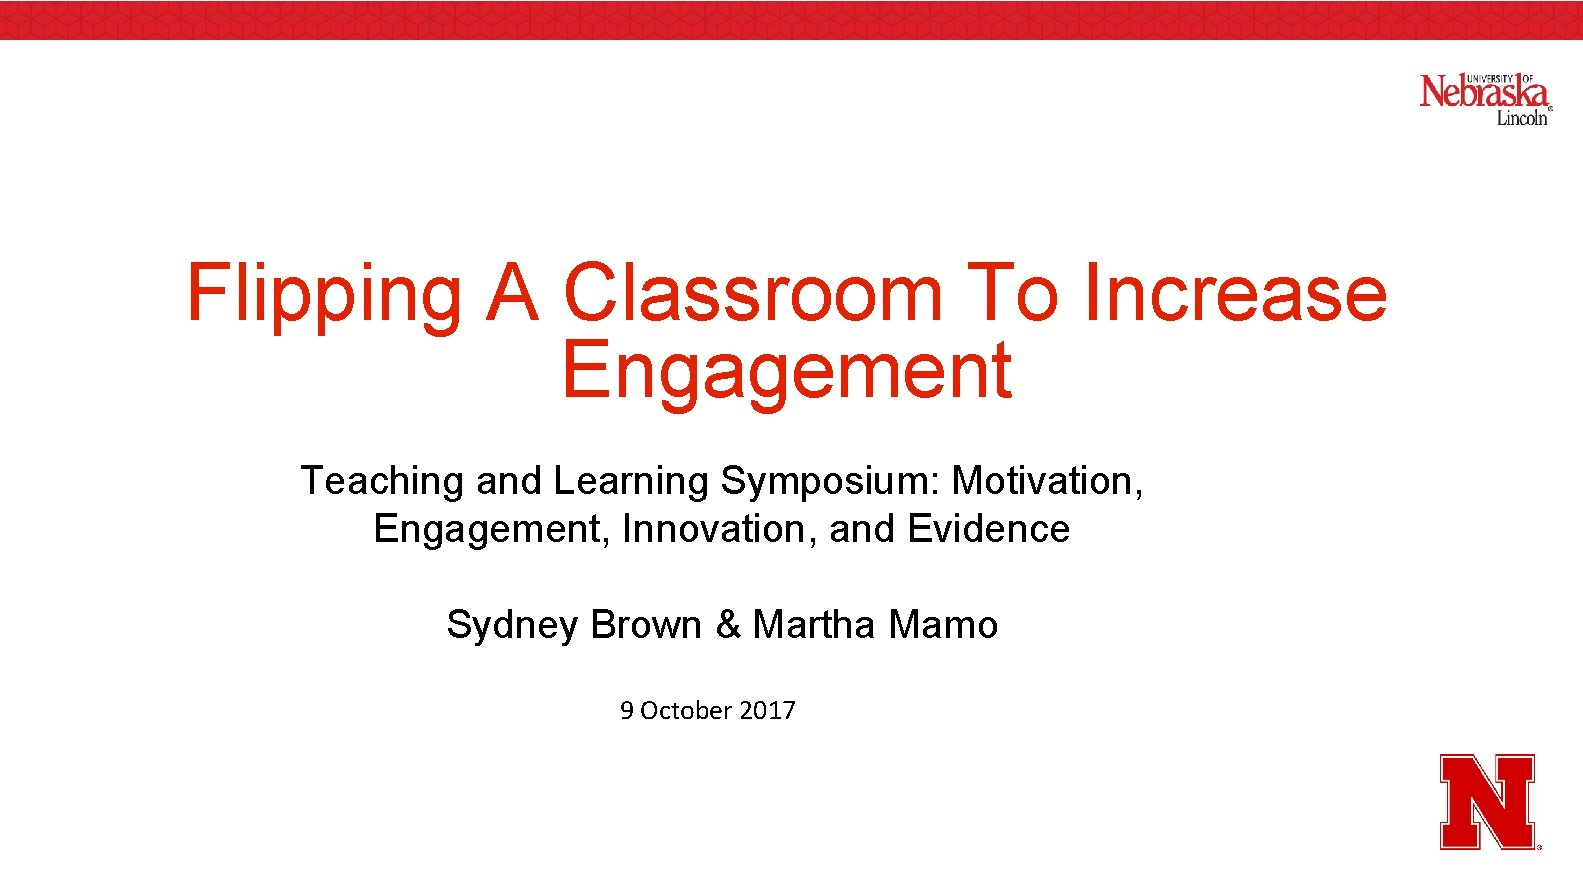 Flipping A Classroom To Increase Engagement Teaching and Learning Symposium: Motivation, Engagement, Innovation, and